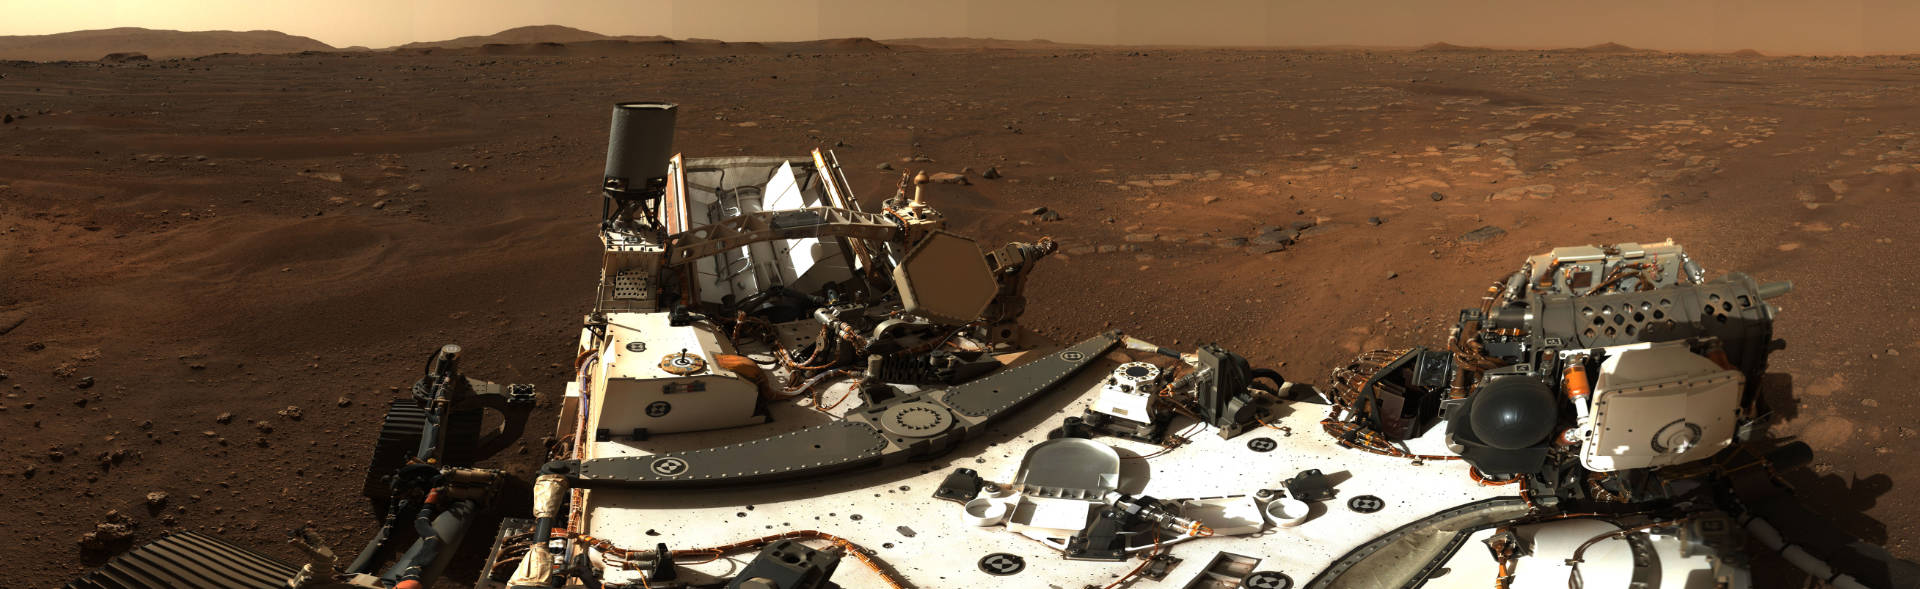 The first panoramic of the Perseverance Rover's new home [Source: NASA]